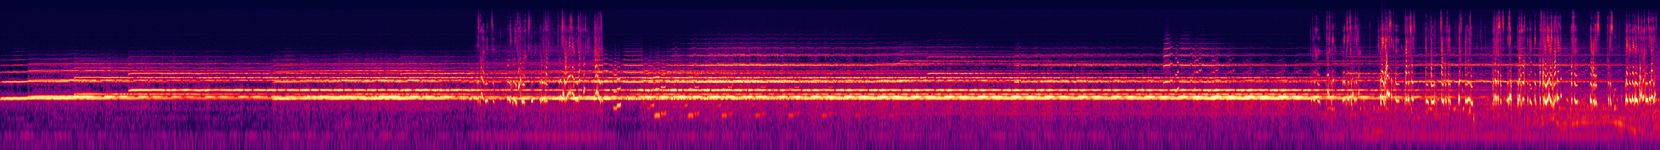 About Bridges - Intro - Spectrogram.jpg